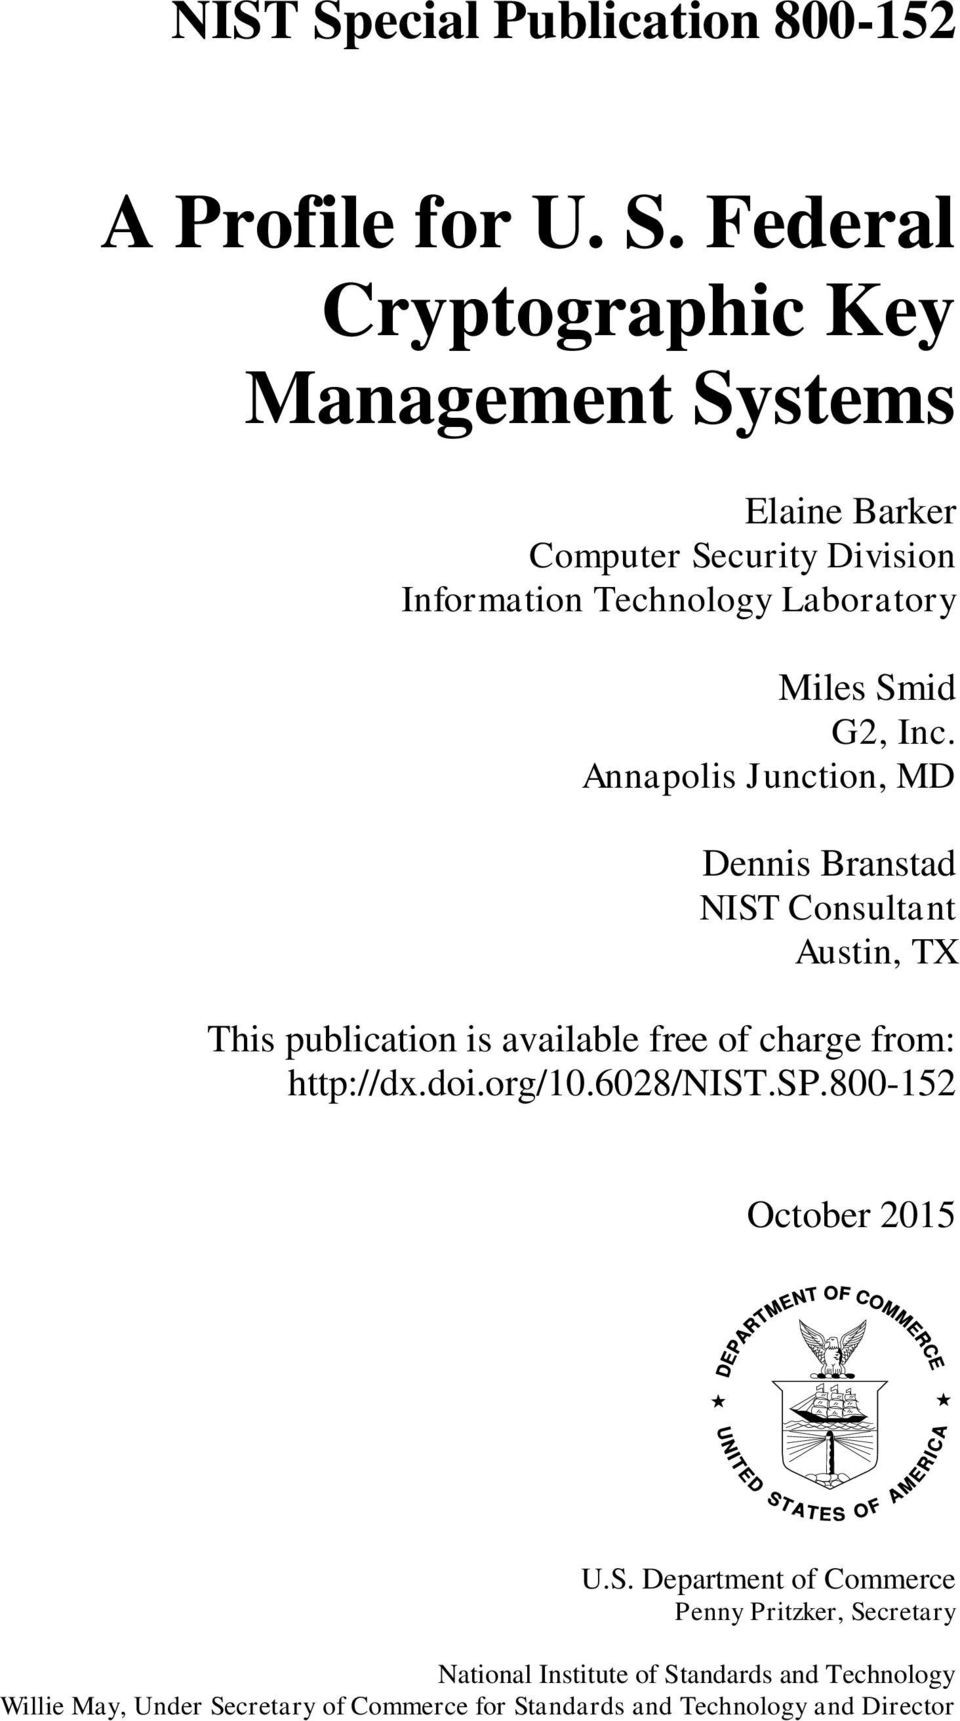 Federal Cryptographic Key Management Systems Elaine Barker Computer Security Division Information Technology Laboratory Miles Smid G2,